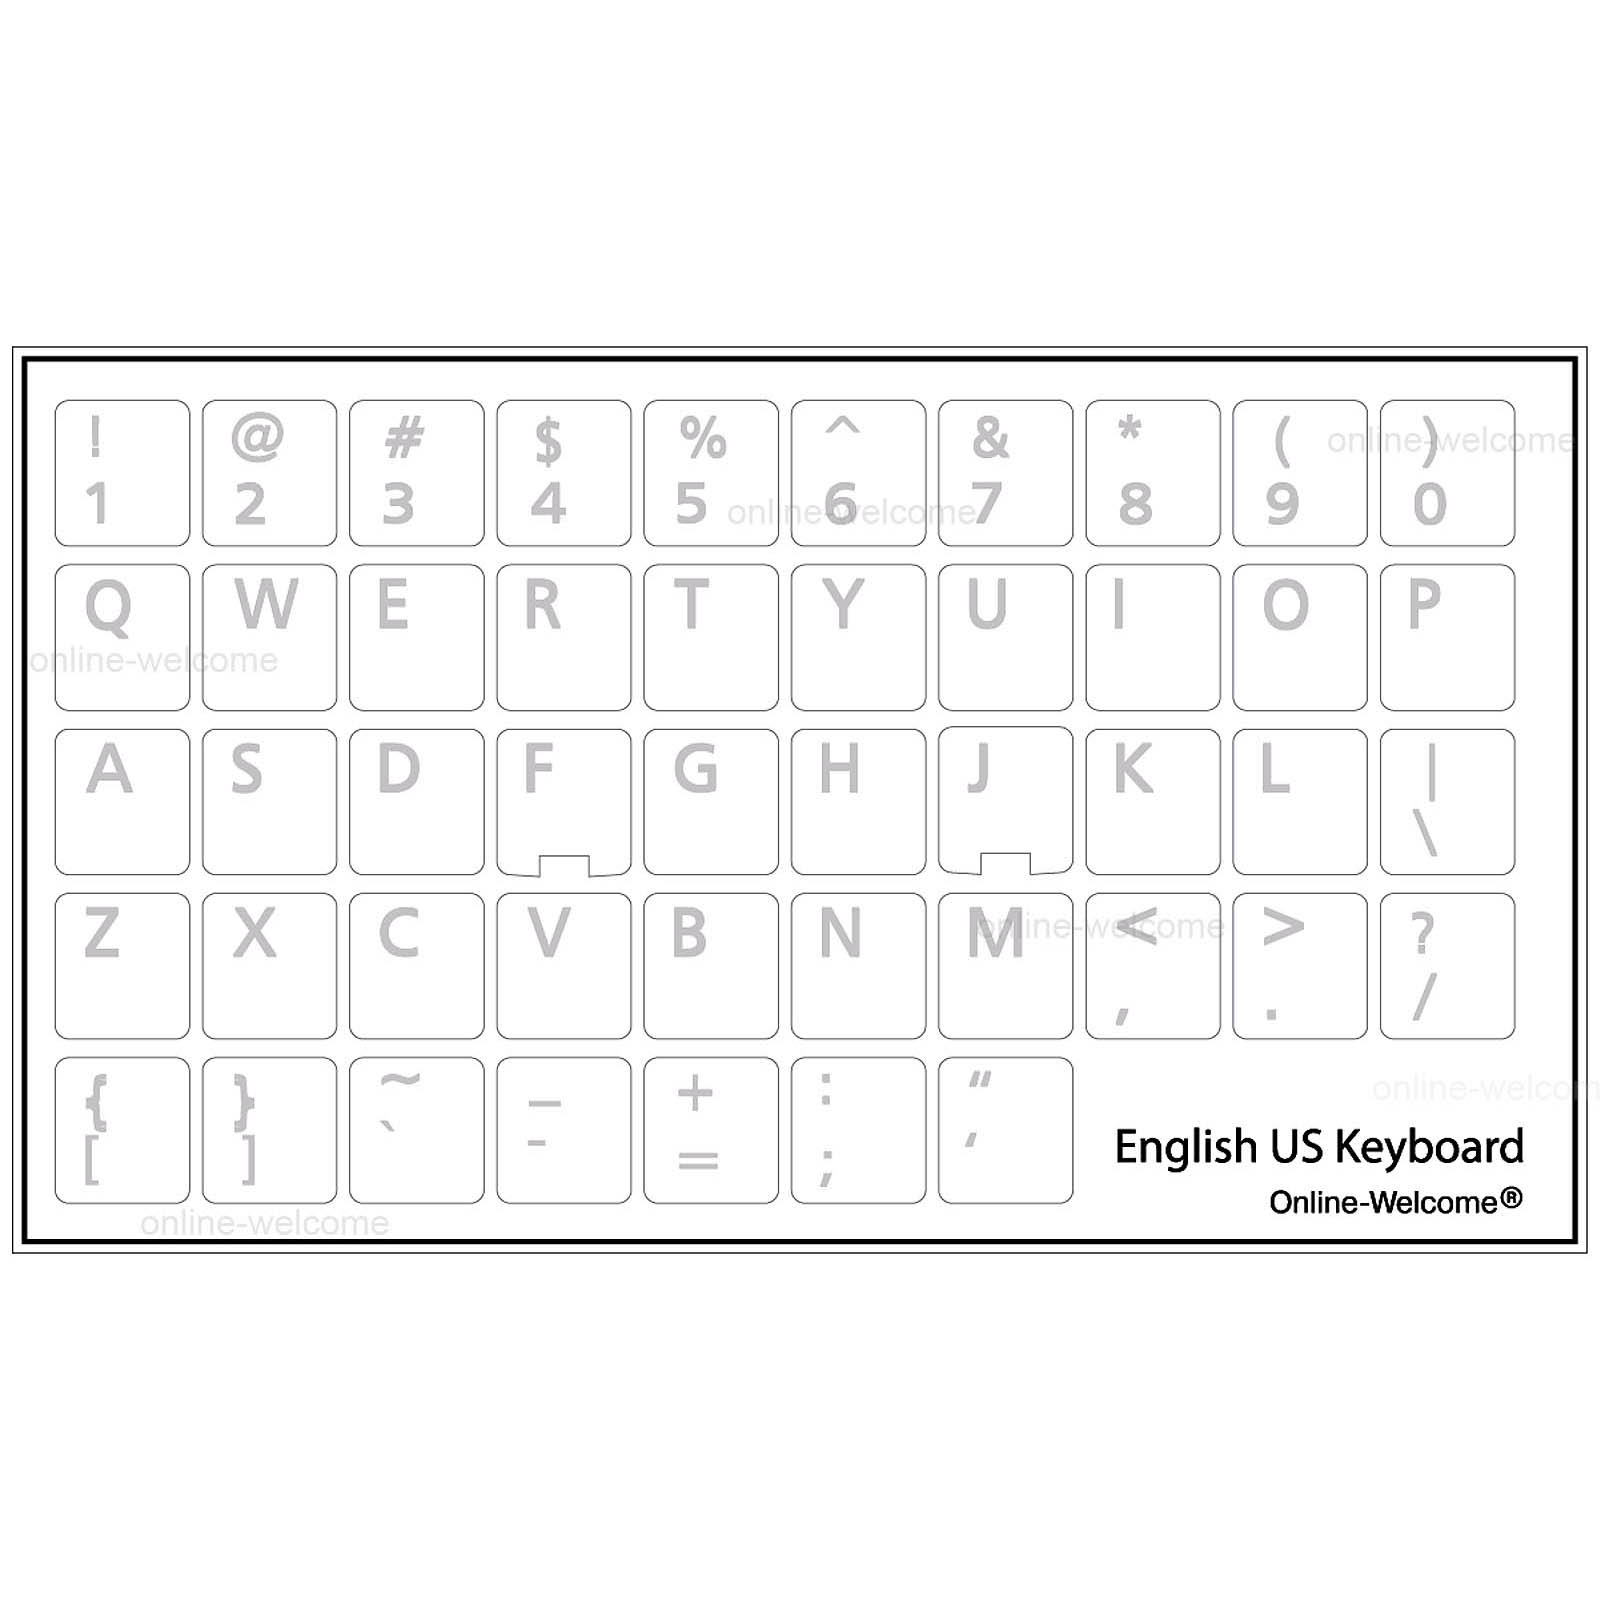 English Us Keyboard Sticker Transparent White Letters For Windows 11 13 Mm Online Welcome